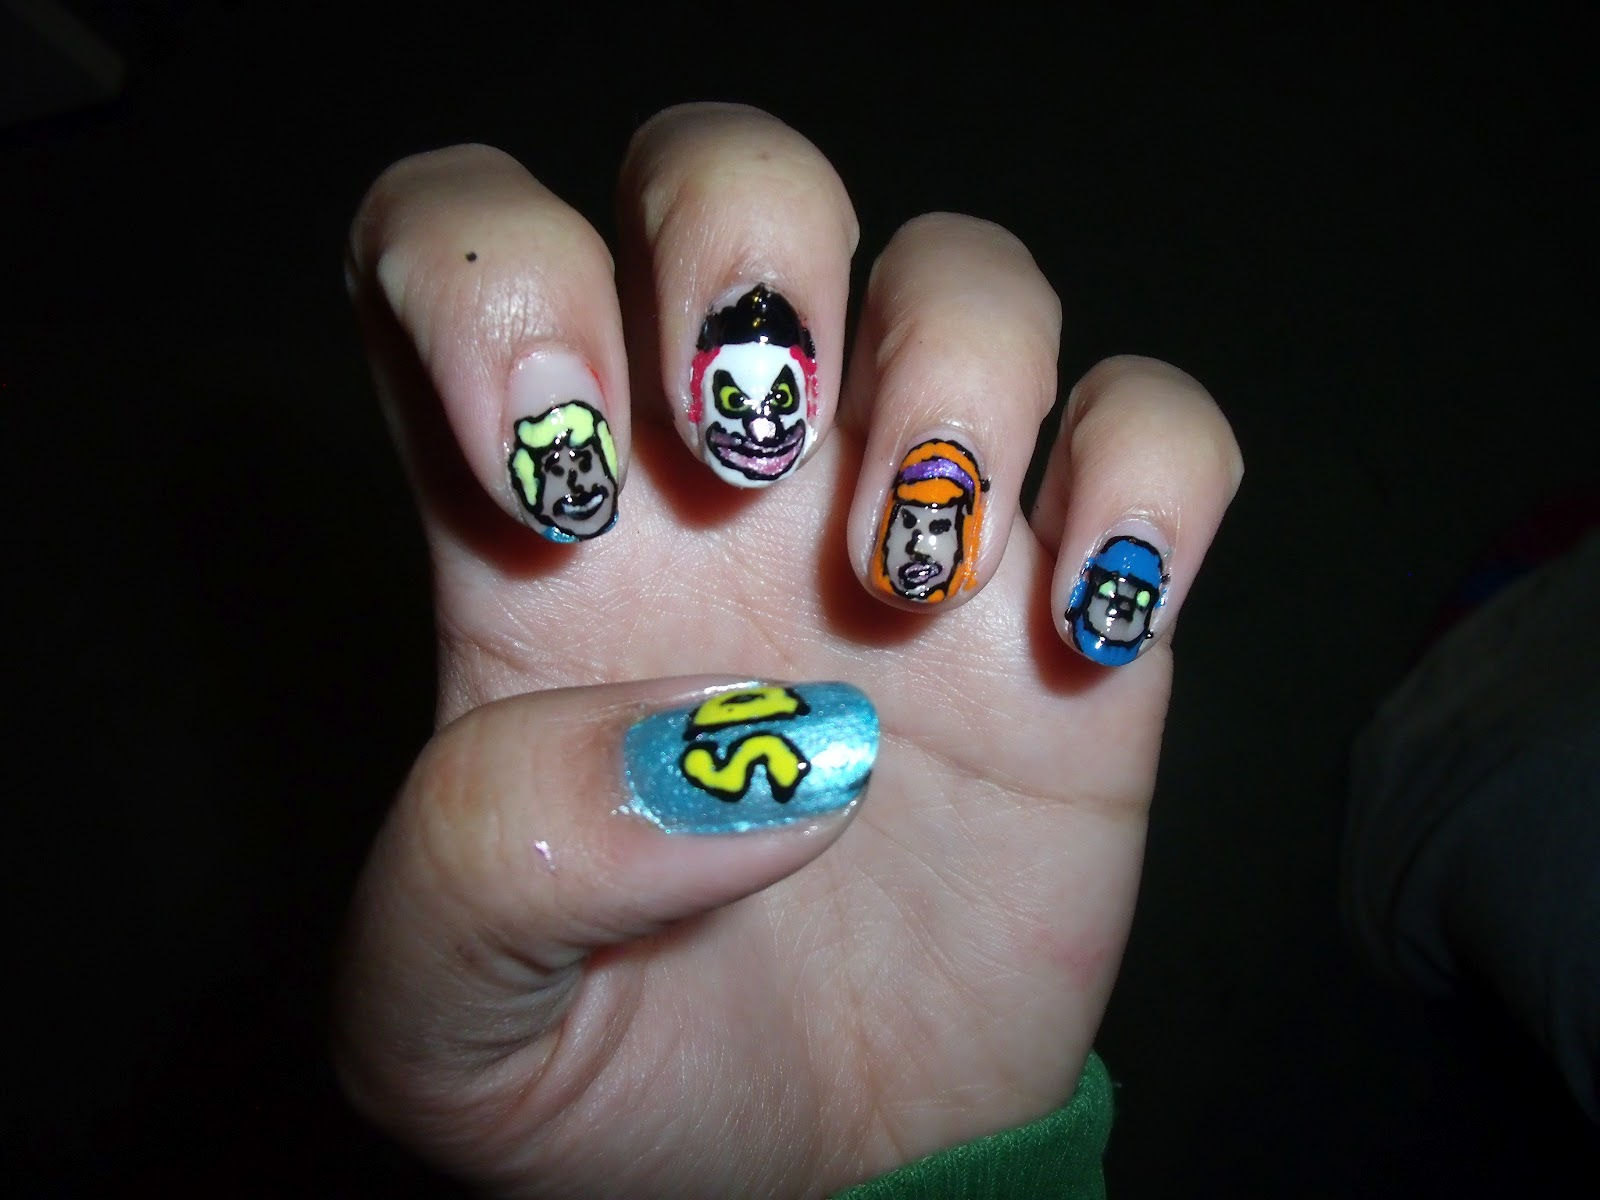 Handee nail tips 31 day nail art challenge day 29 thumb scooby doo logo prinsesfo Image collections